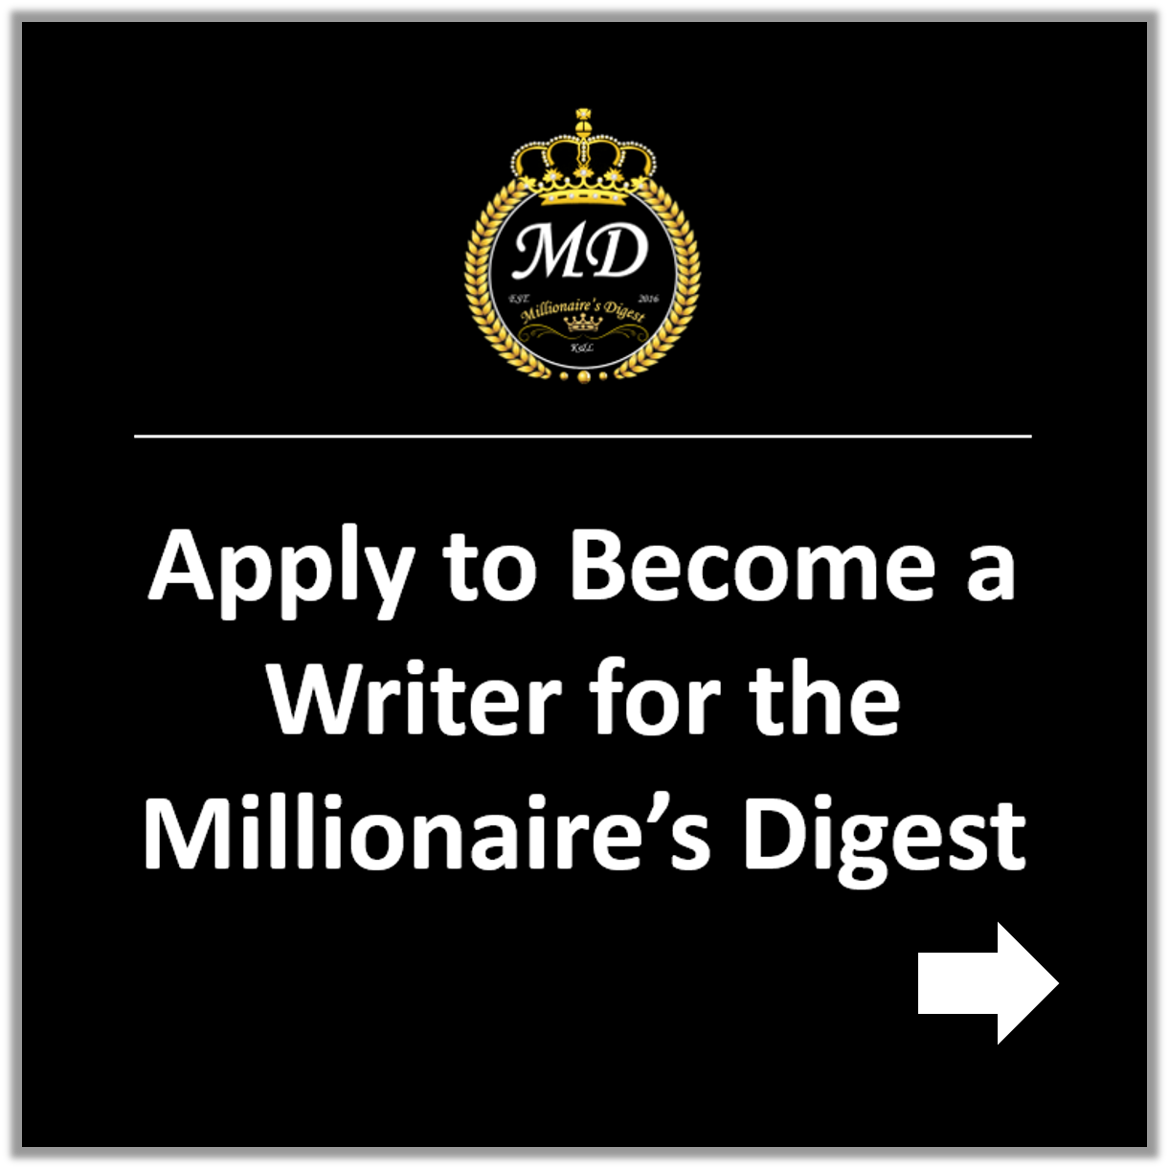 apply_to_become_a_writer_for_the_millionaires_digest